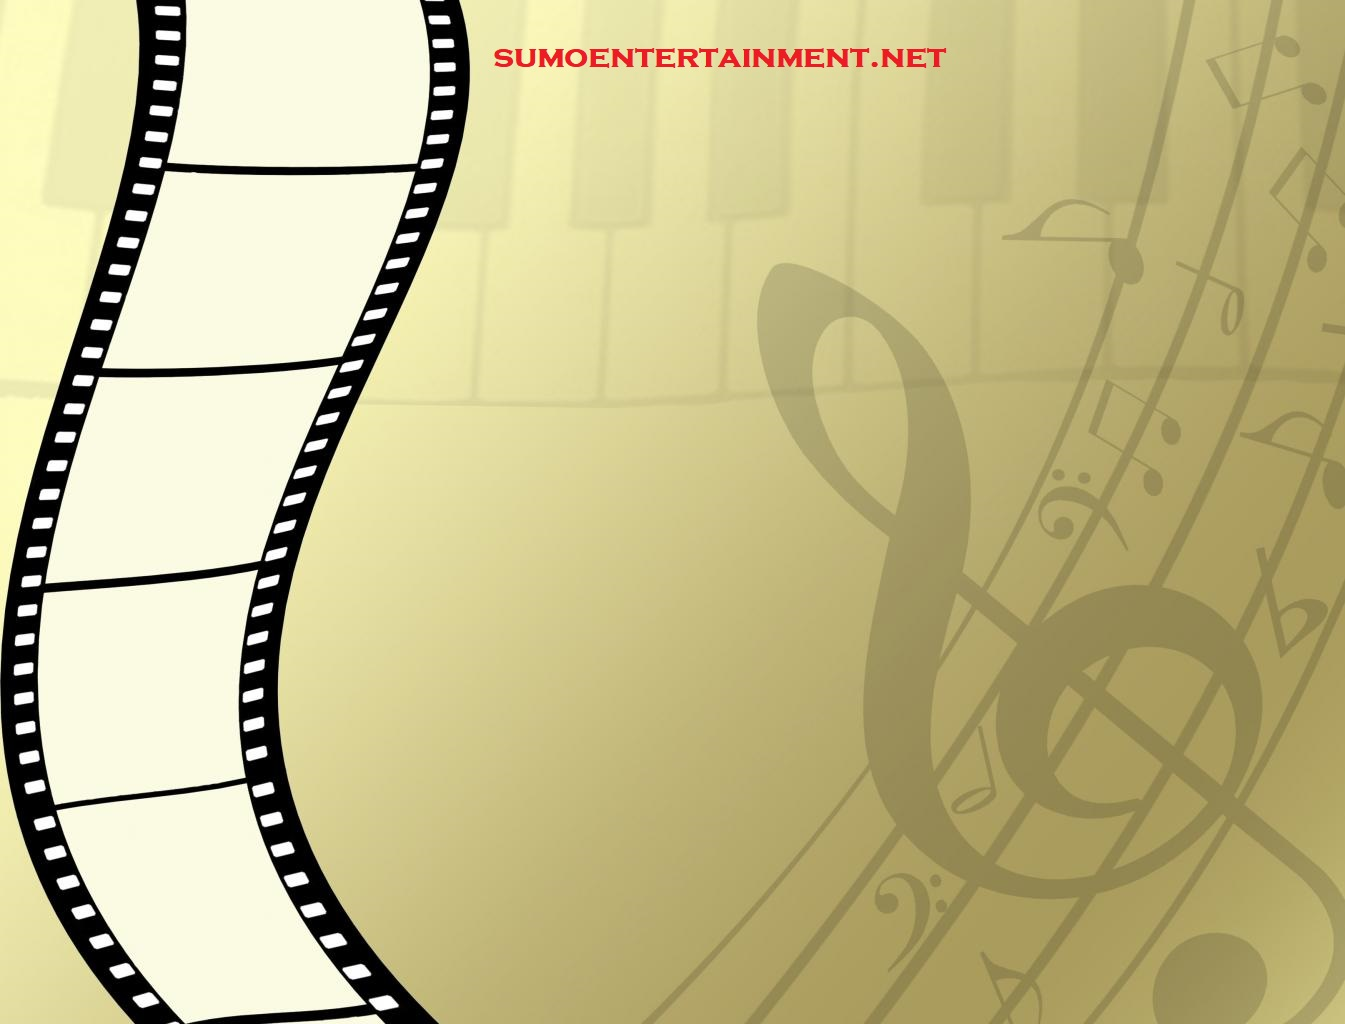 Movies and Roles and Their Influence on the Society: Sumo Entertainment JD3